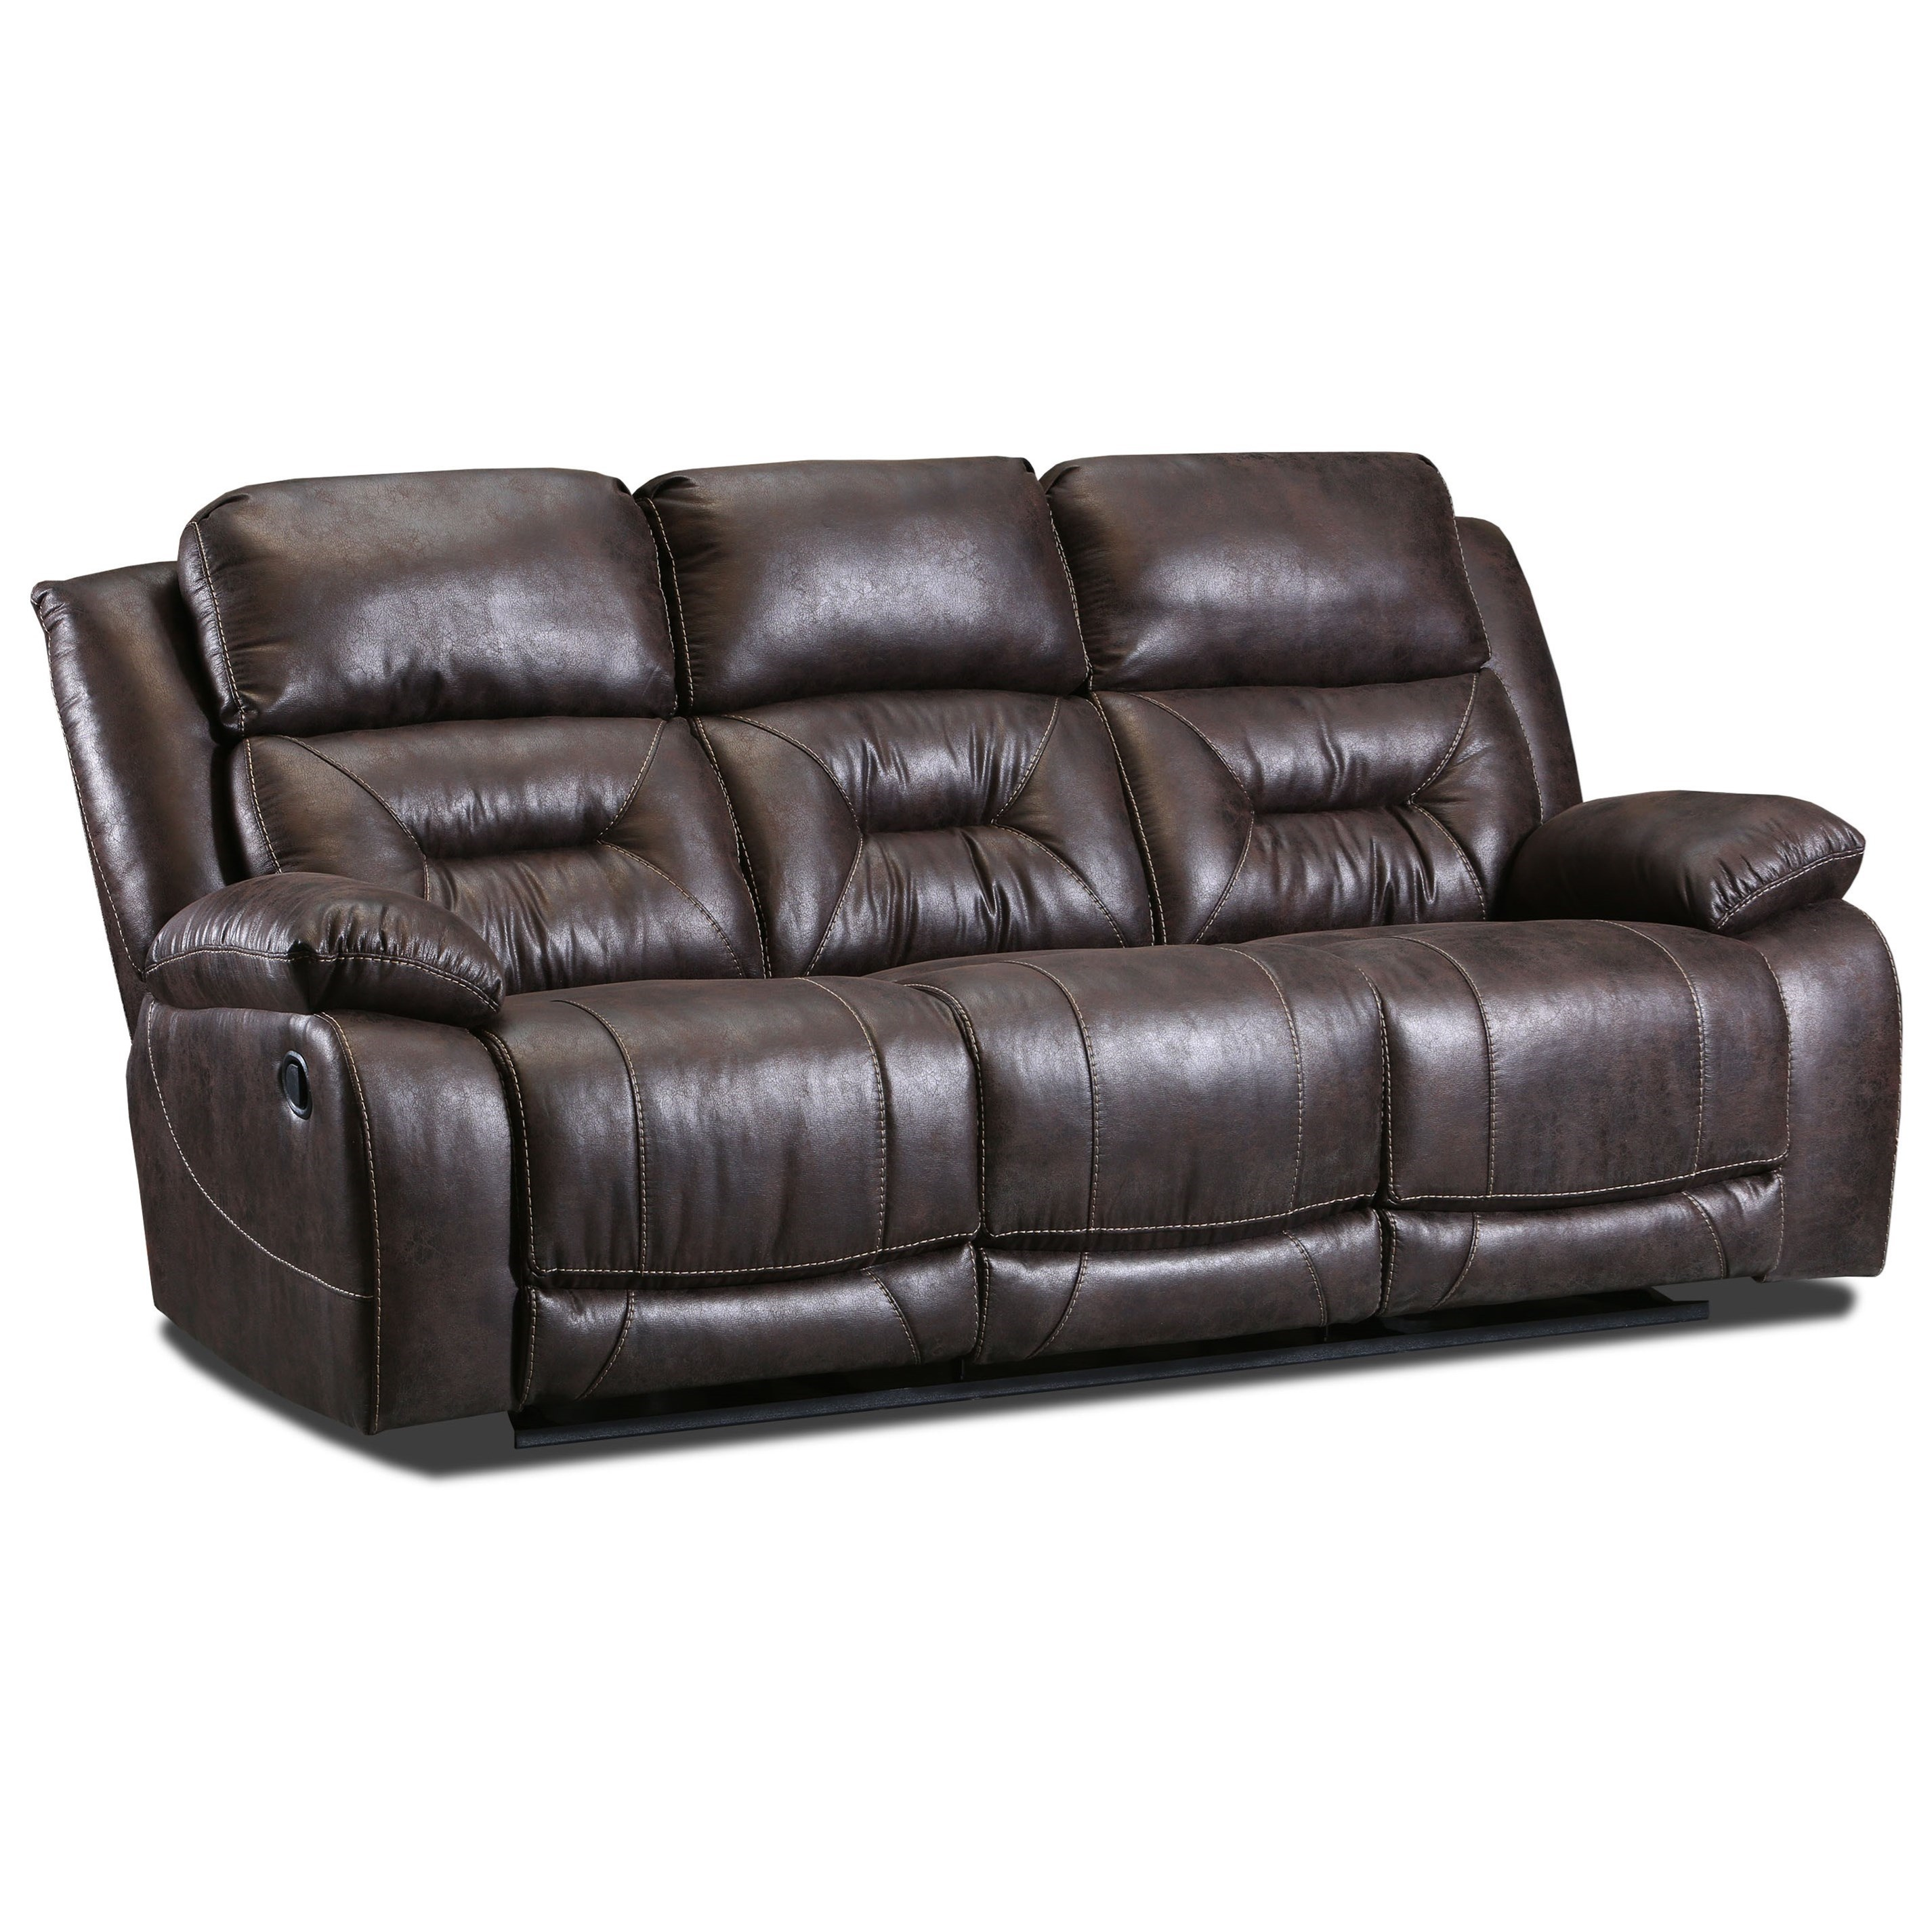 Sensational American Furniture Af200 Casual Power Reclining Sofa With Unemploymentrelief Wooden Chair Designs For Living Room Unemploymentrelieforg